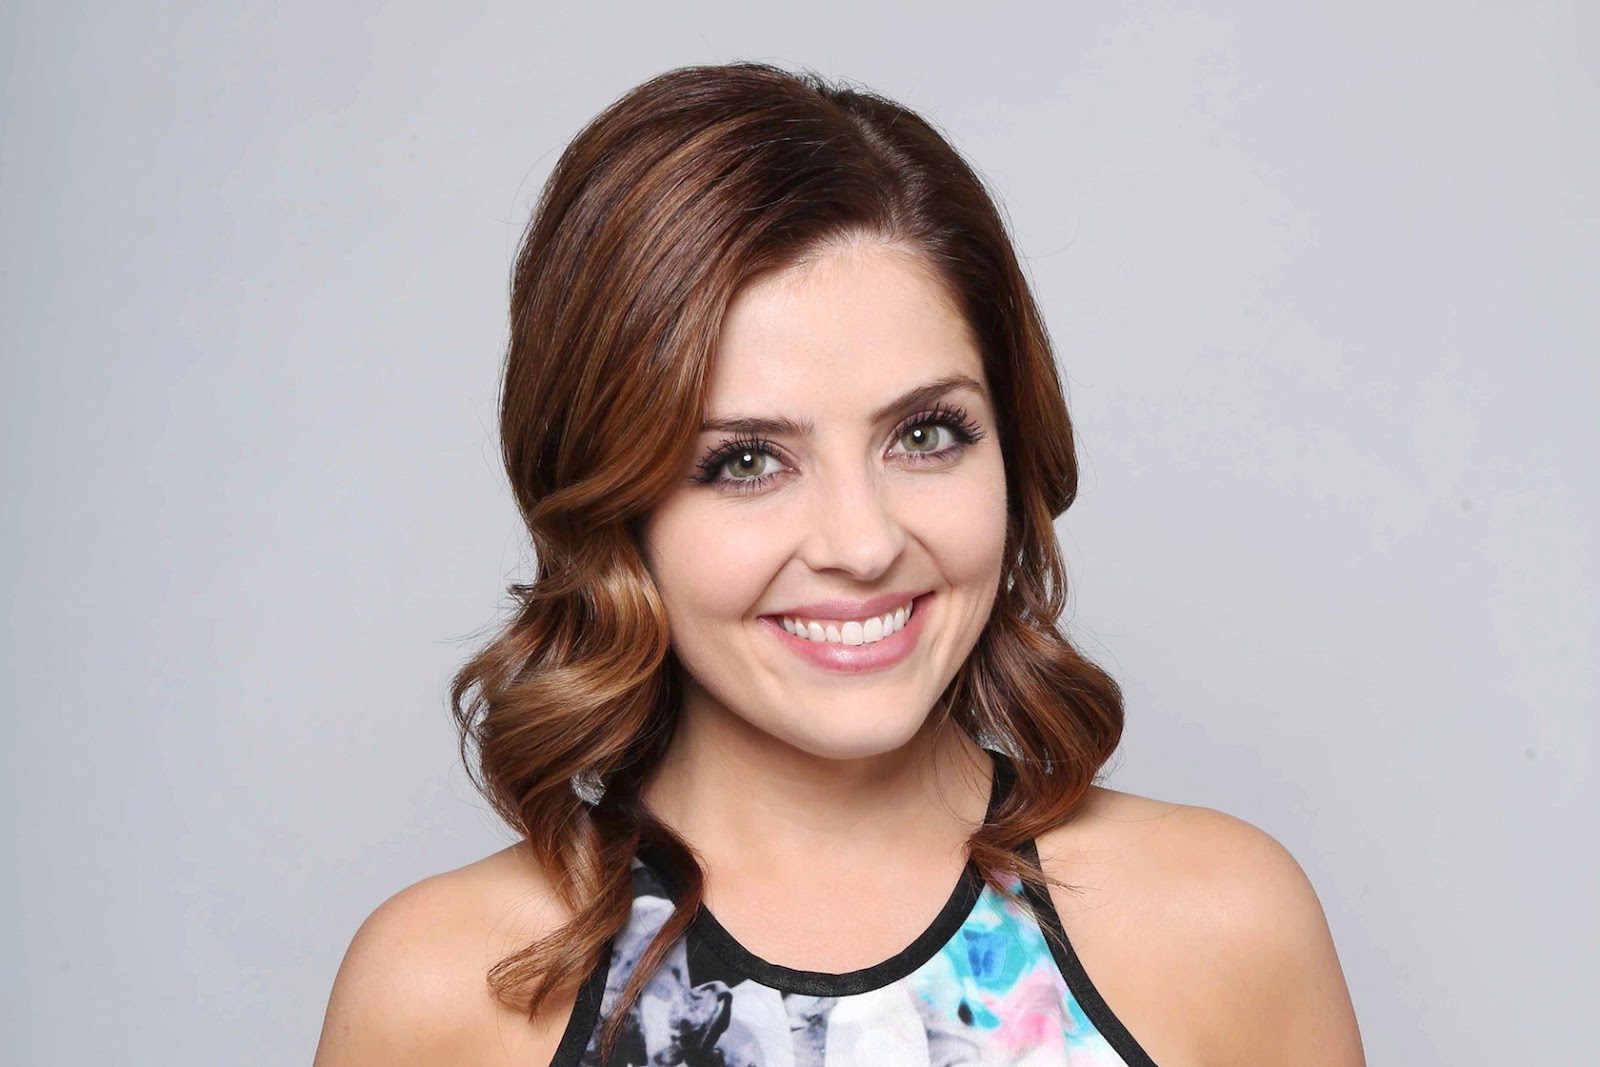 ICloud Jen Lilley naked (36 foto and video), Pussy, Hot, Selfie, underwear 2015